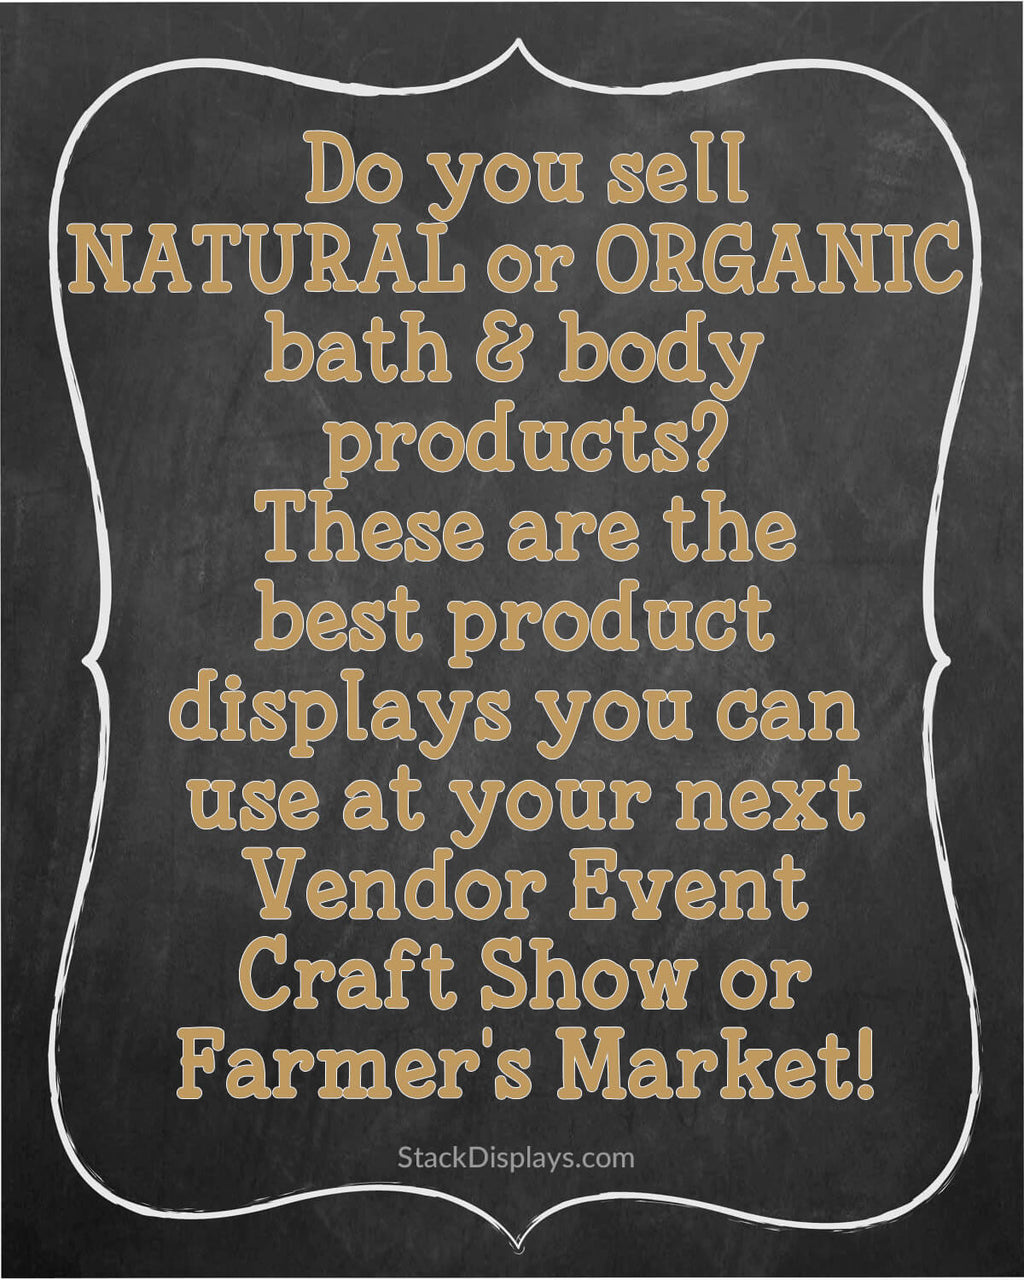 The Best Type of Displays to Use at Vendor Events & Craft Shows for Natural and Organic Products!